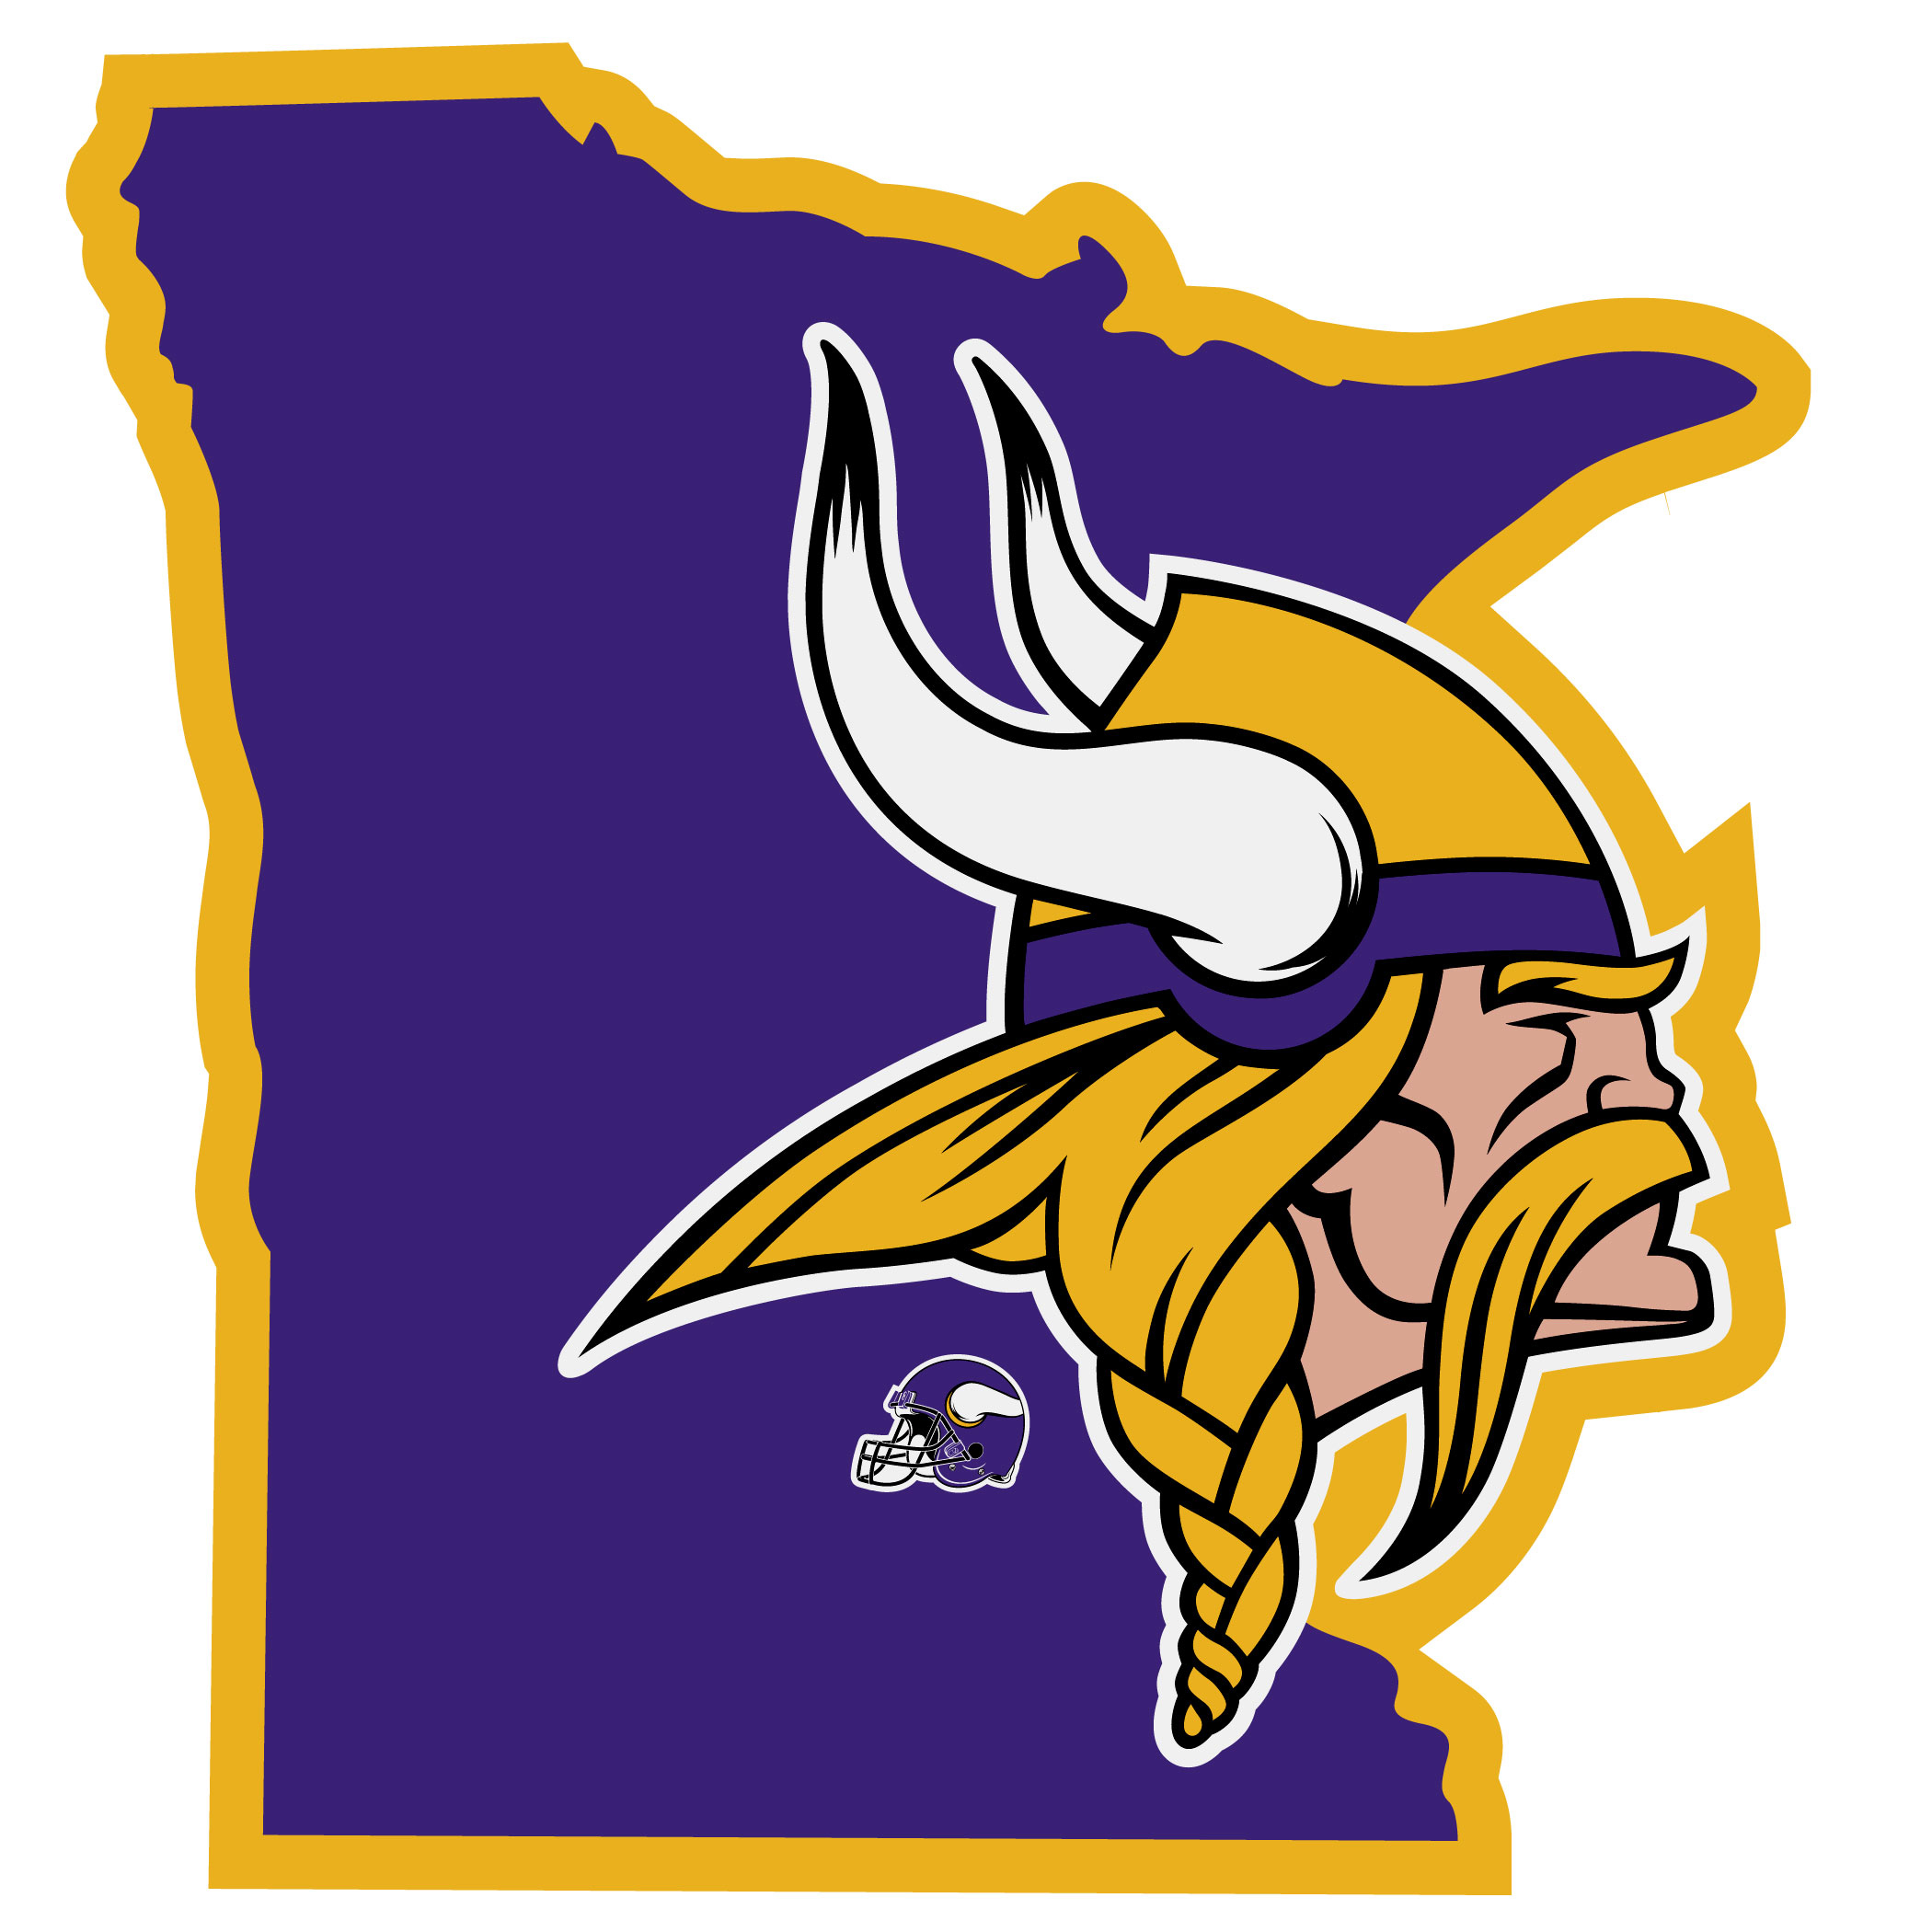 Minnesota Vikings Home State Decal - It's a home state decal with a sporty twist! This Minnesota Vikings decal feature the team logo over a silhouette of the state in team colors and a heart marking the home of the team. The decal is approximately 5 inches on repositionable vinyl.